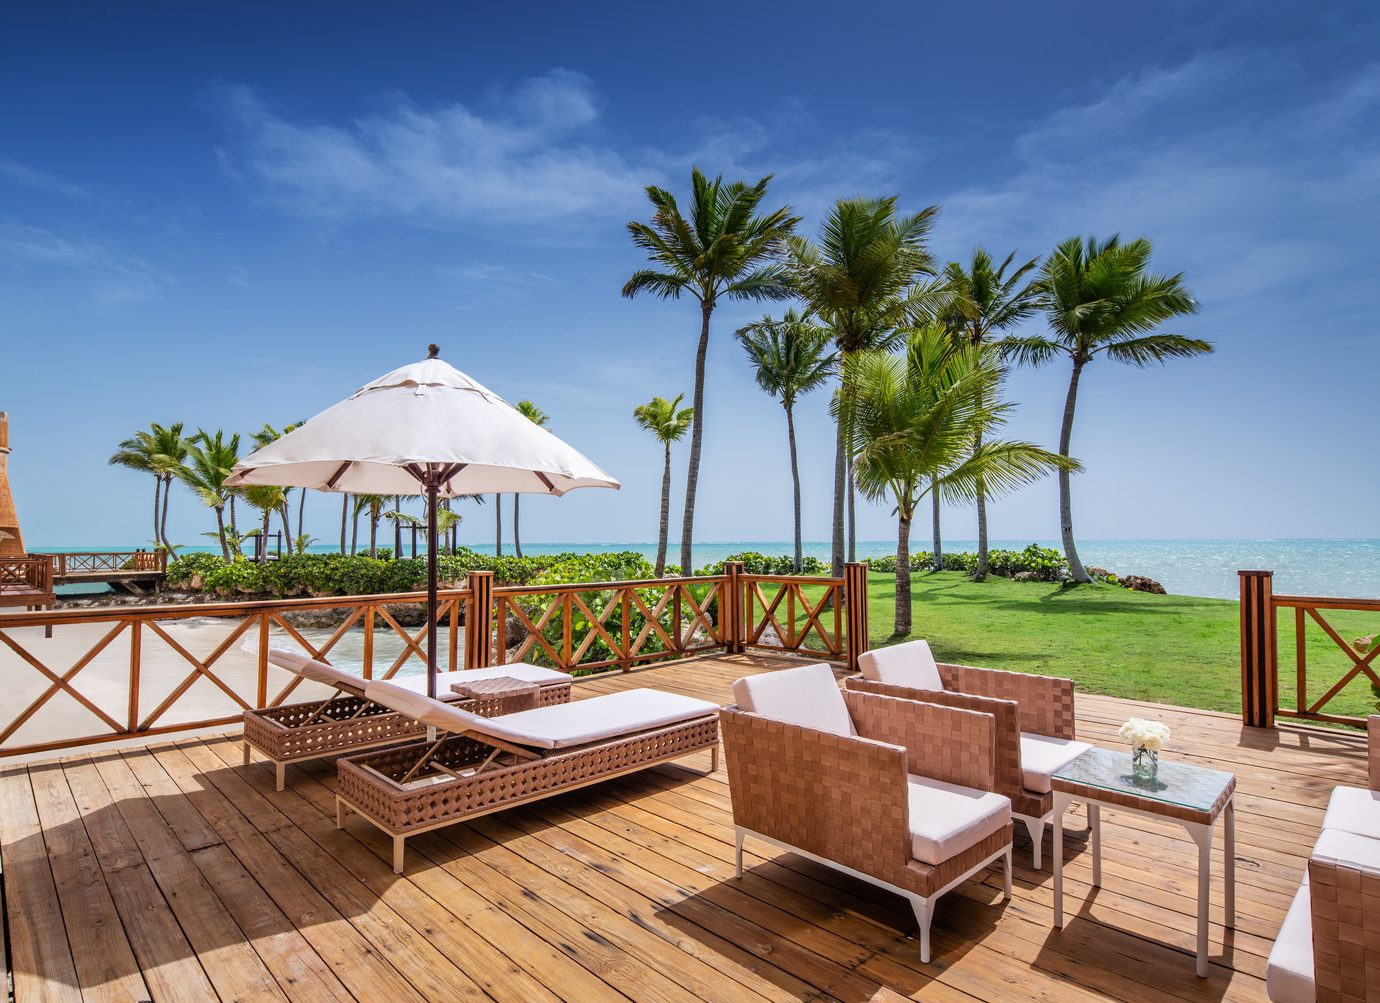 The Best Adults Only Allinclusive Resorts In The World